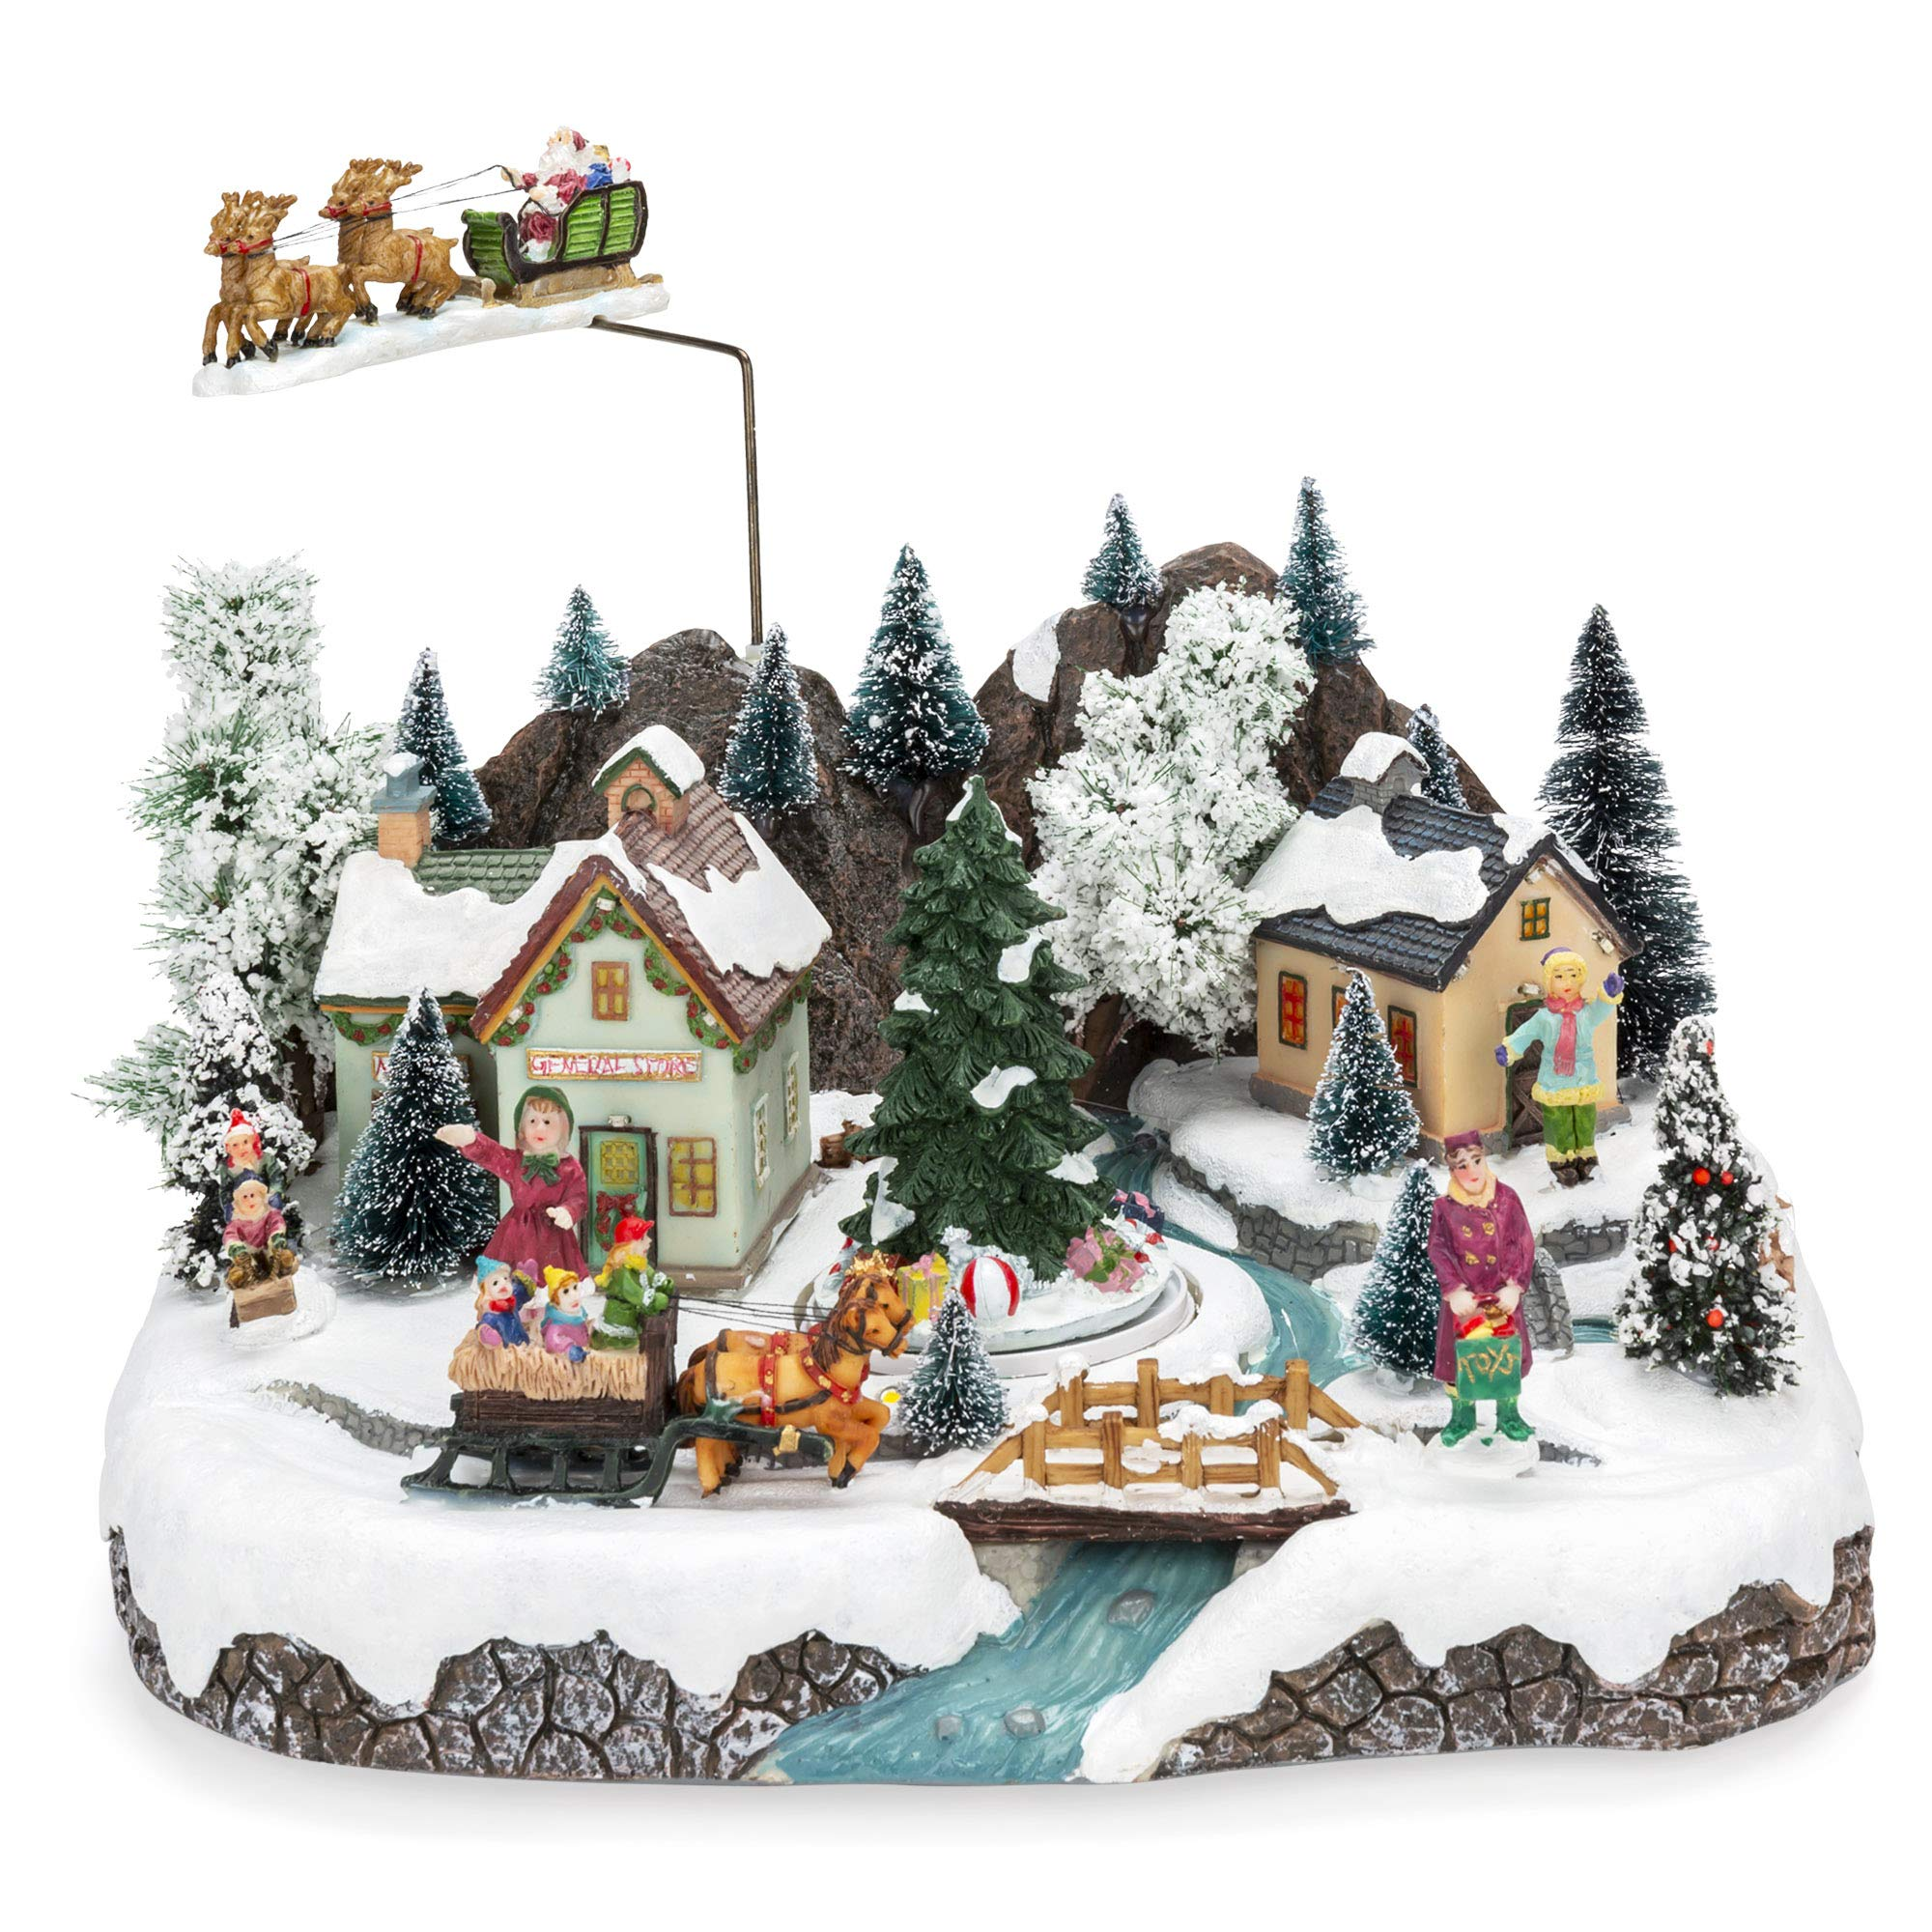 Best Choice Products Animated Musical Pre-Lit Tabletop Christmas Village w/Rotating Tree, Santa's Sleigh and Reindeer by Best Choice Products